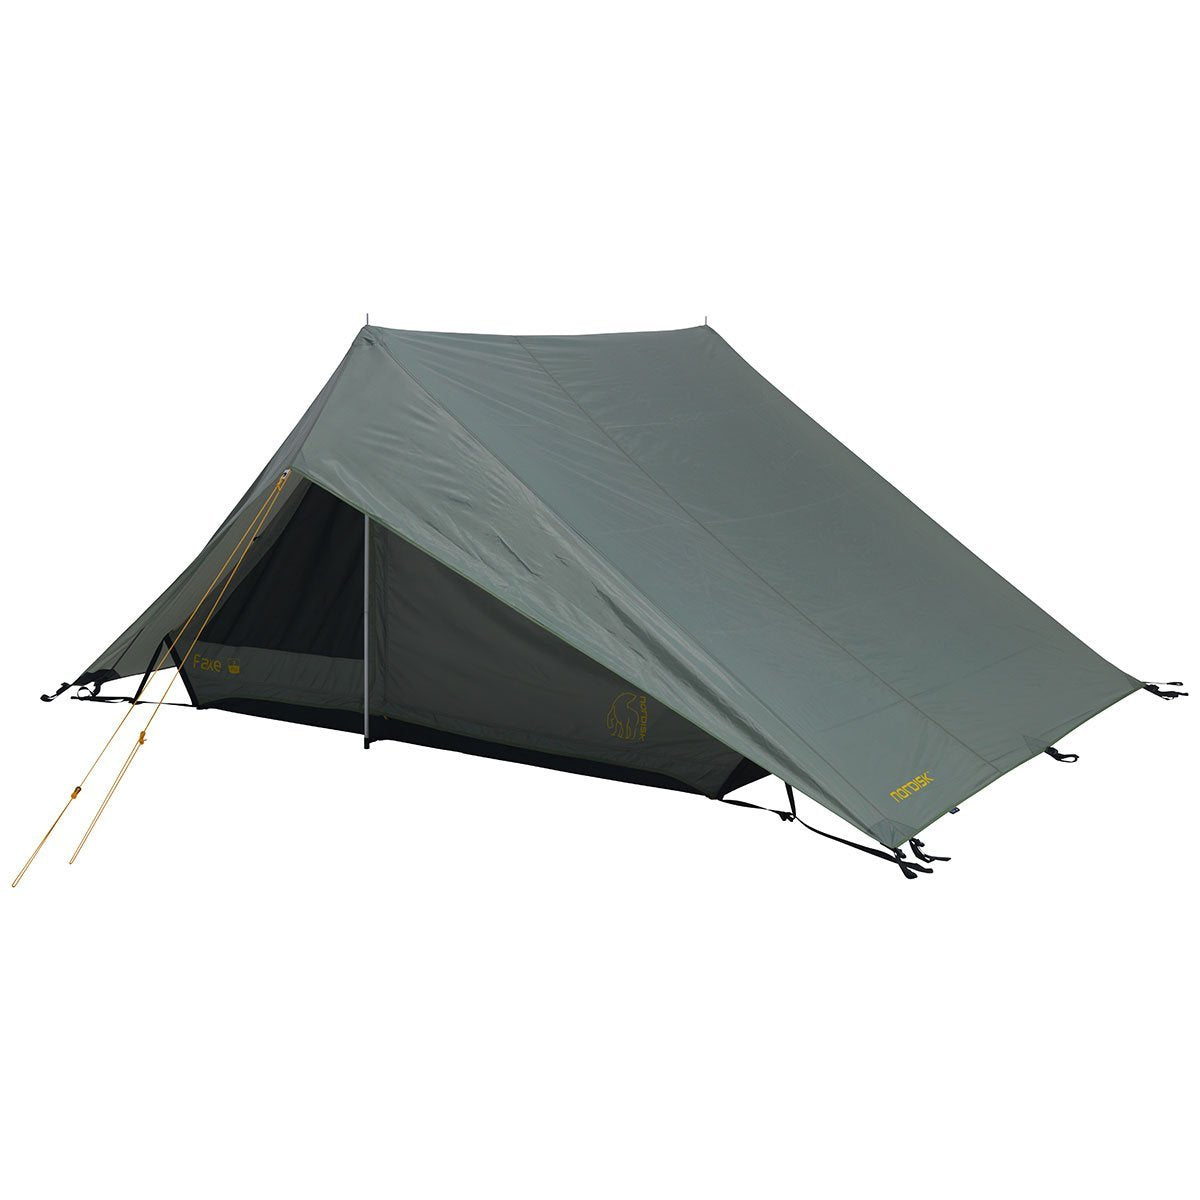 Nordisk | Faxe 3 PU | 3 Man Ridge Tent | Classic 3 Person Tent | Dusty Green